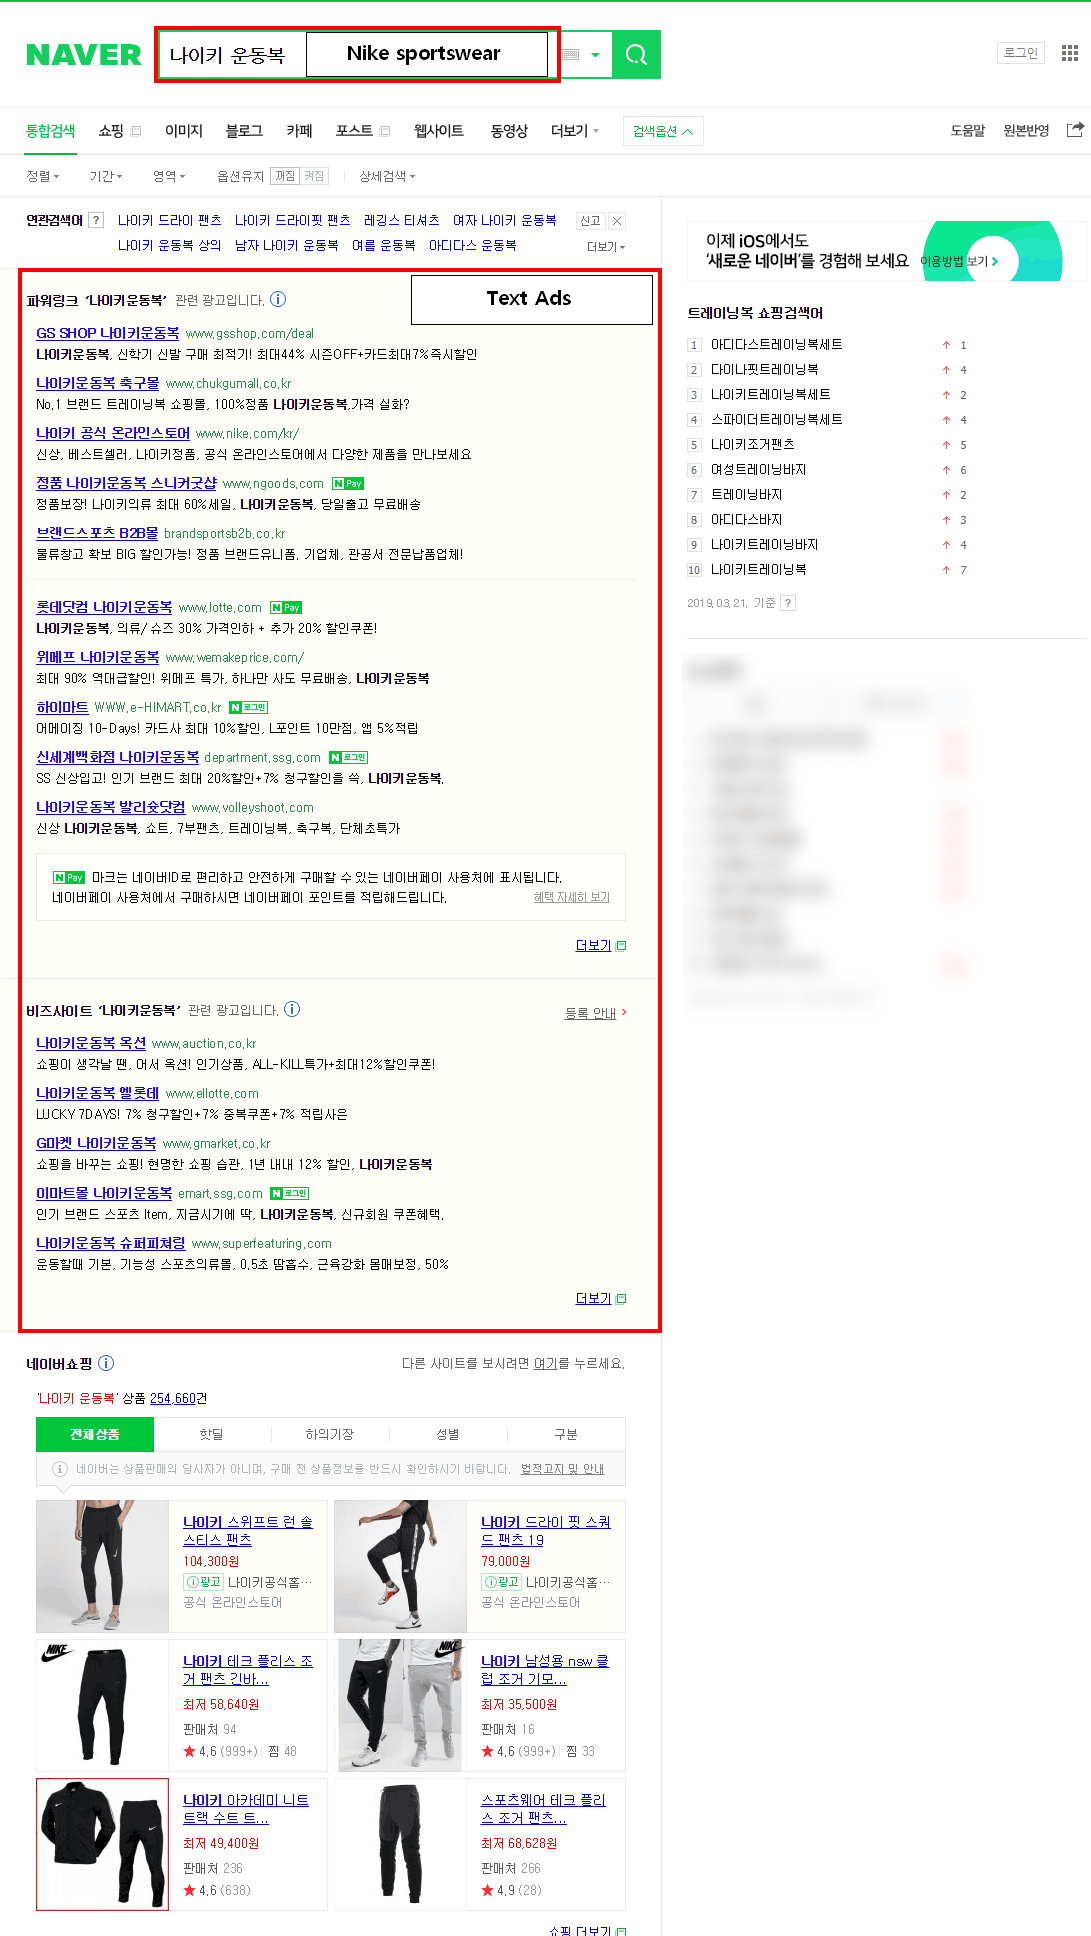 Naver Ads: Text Ad Example